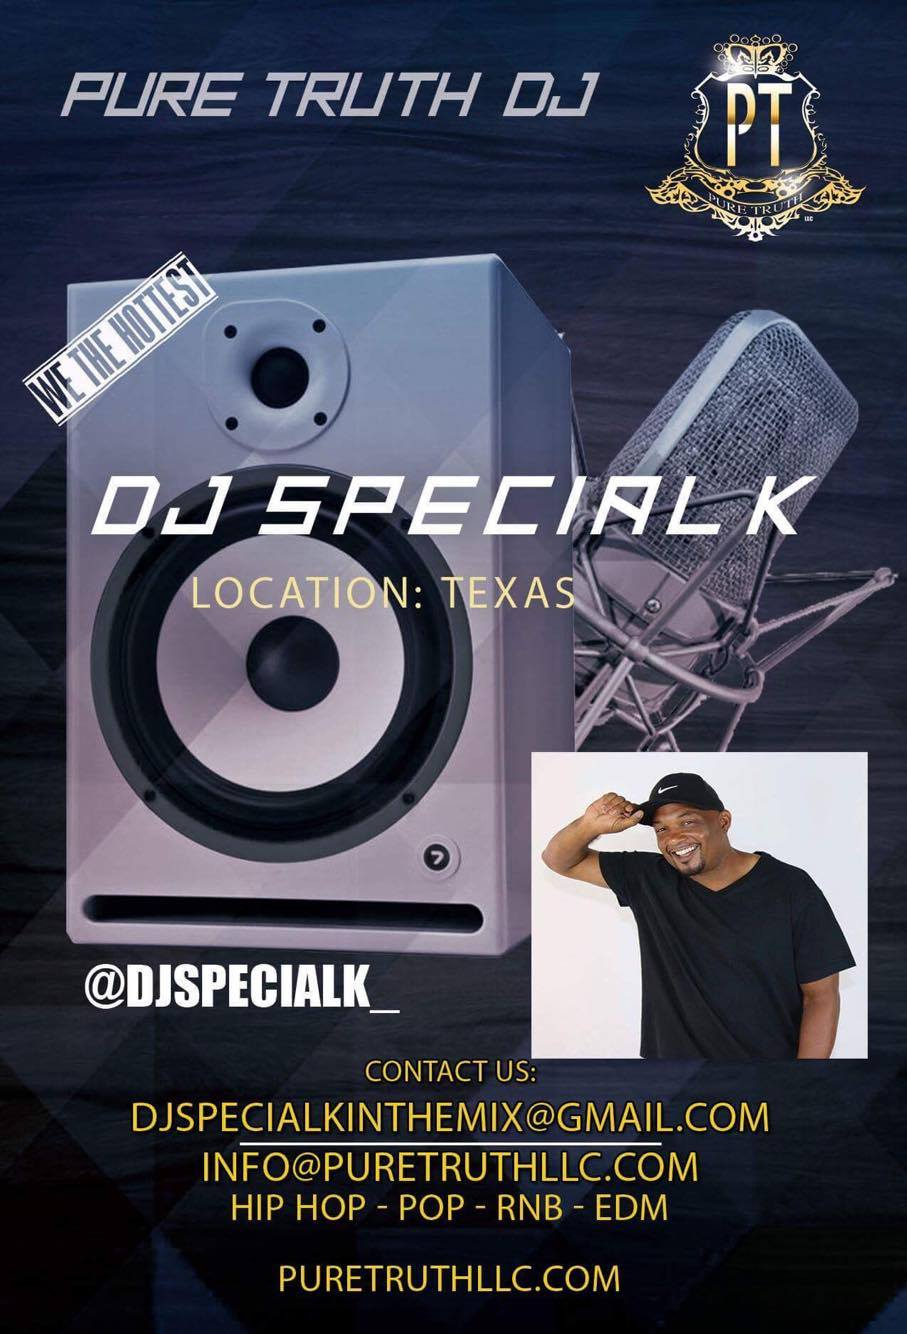 Pure Truth DJ Special K